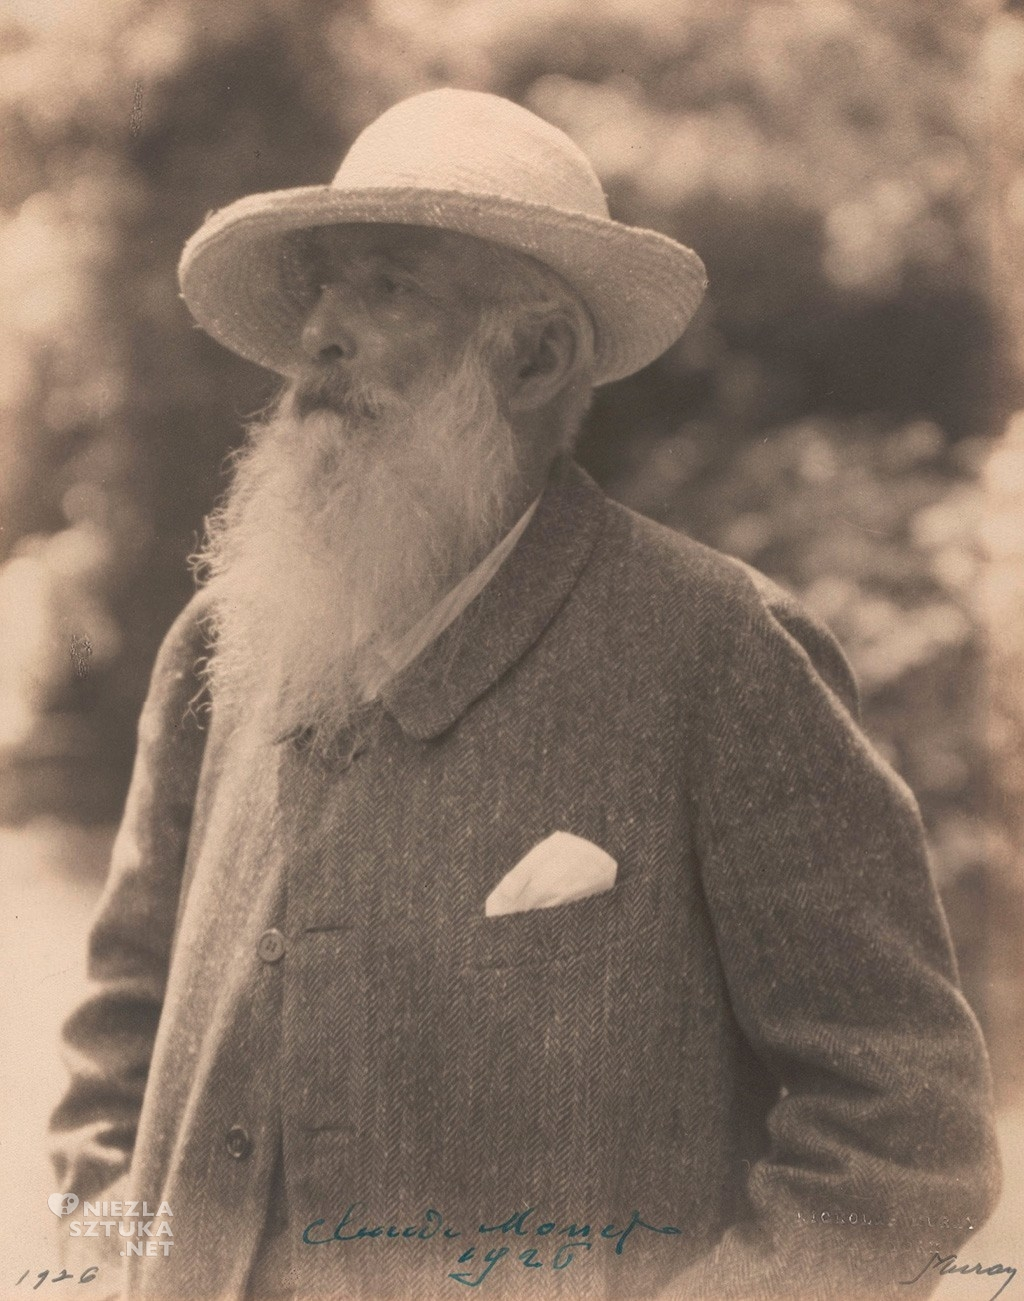 Claude Monet | 1926, fot. Nickolas Muray, moma.org